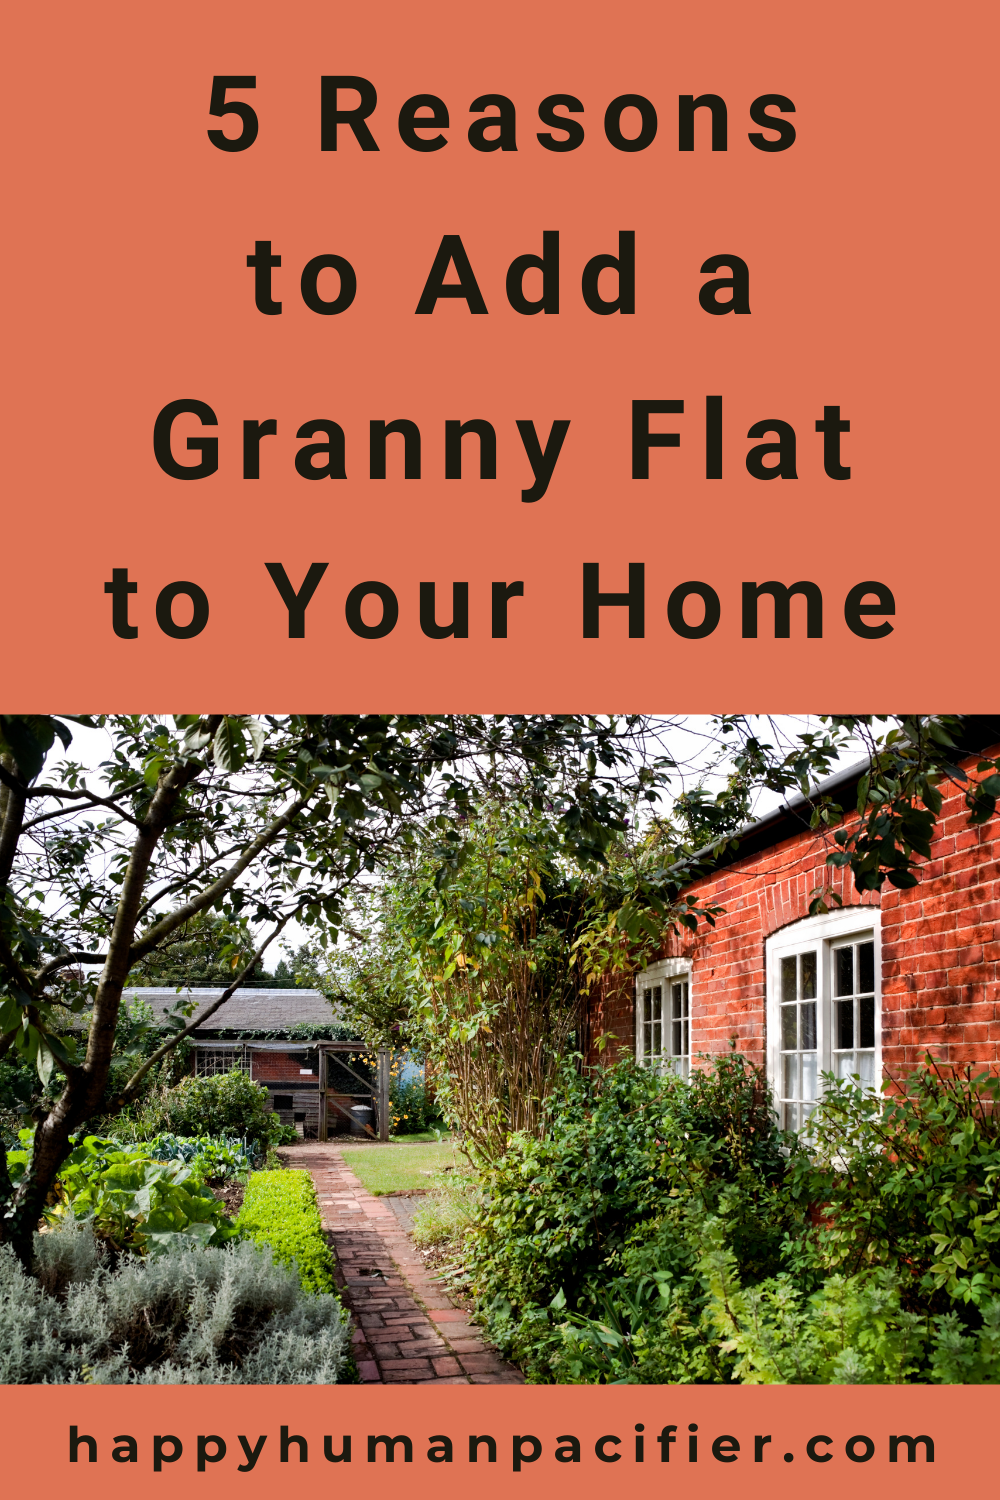 Granny Flats or accessory dwelling units can be a valuable addition to your existing property. Here are 5 reasons to add a granny flat or ADU to your home.